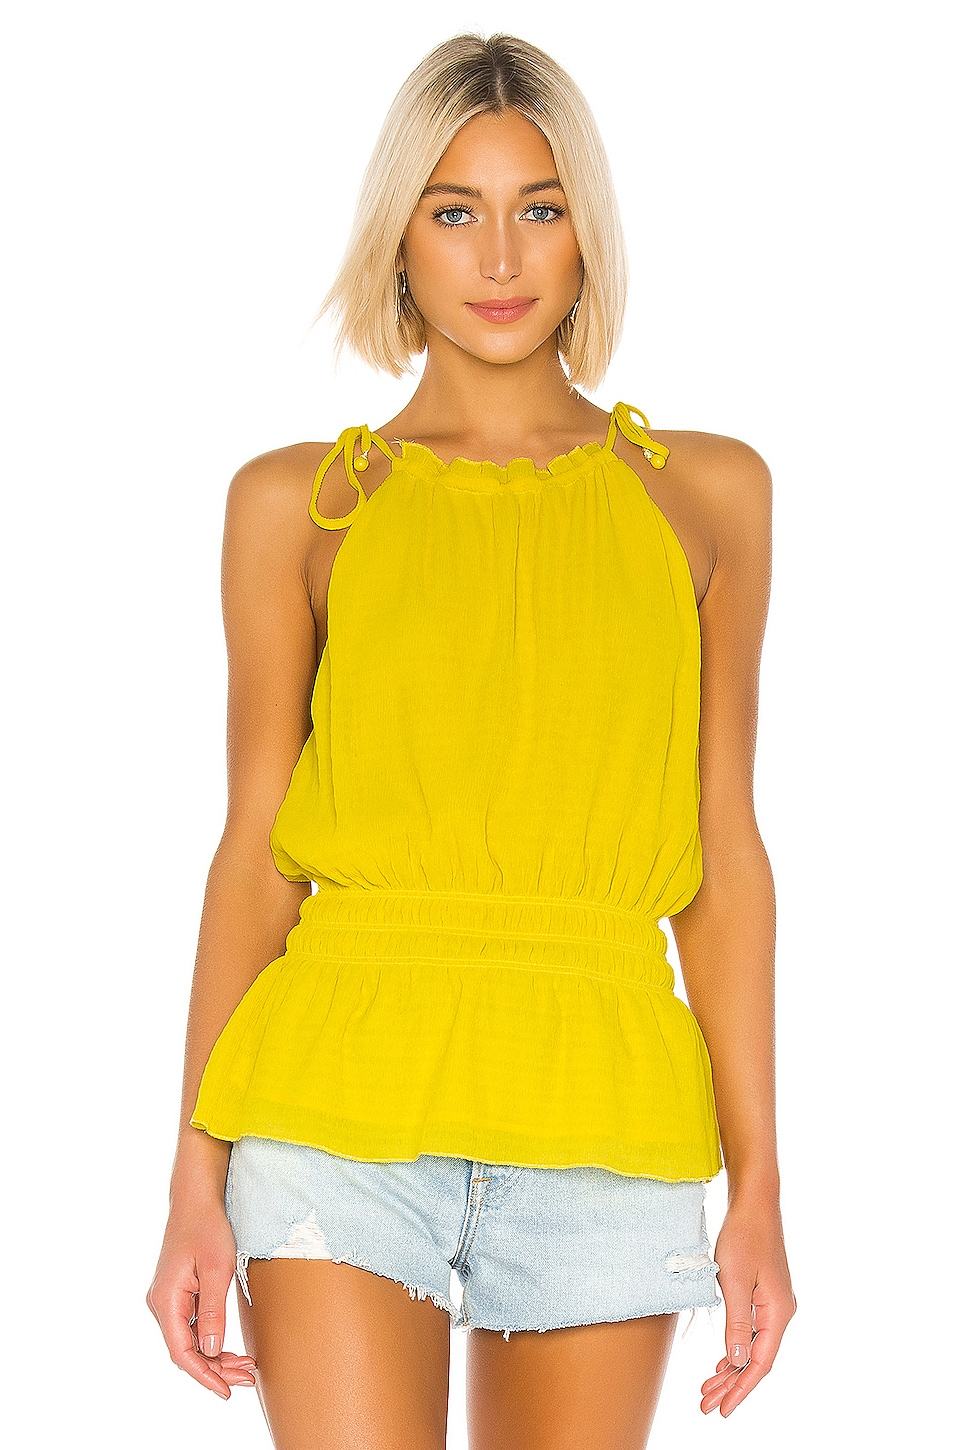 Tularosa Lilo Top in Vibrant Yellow